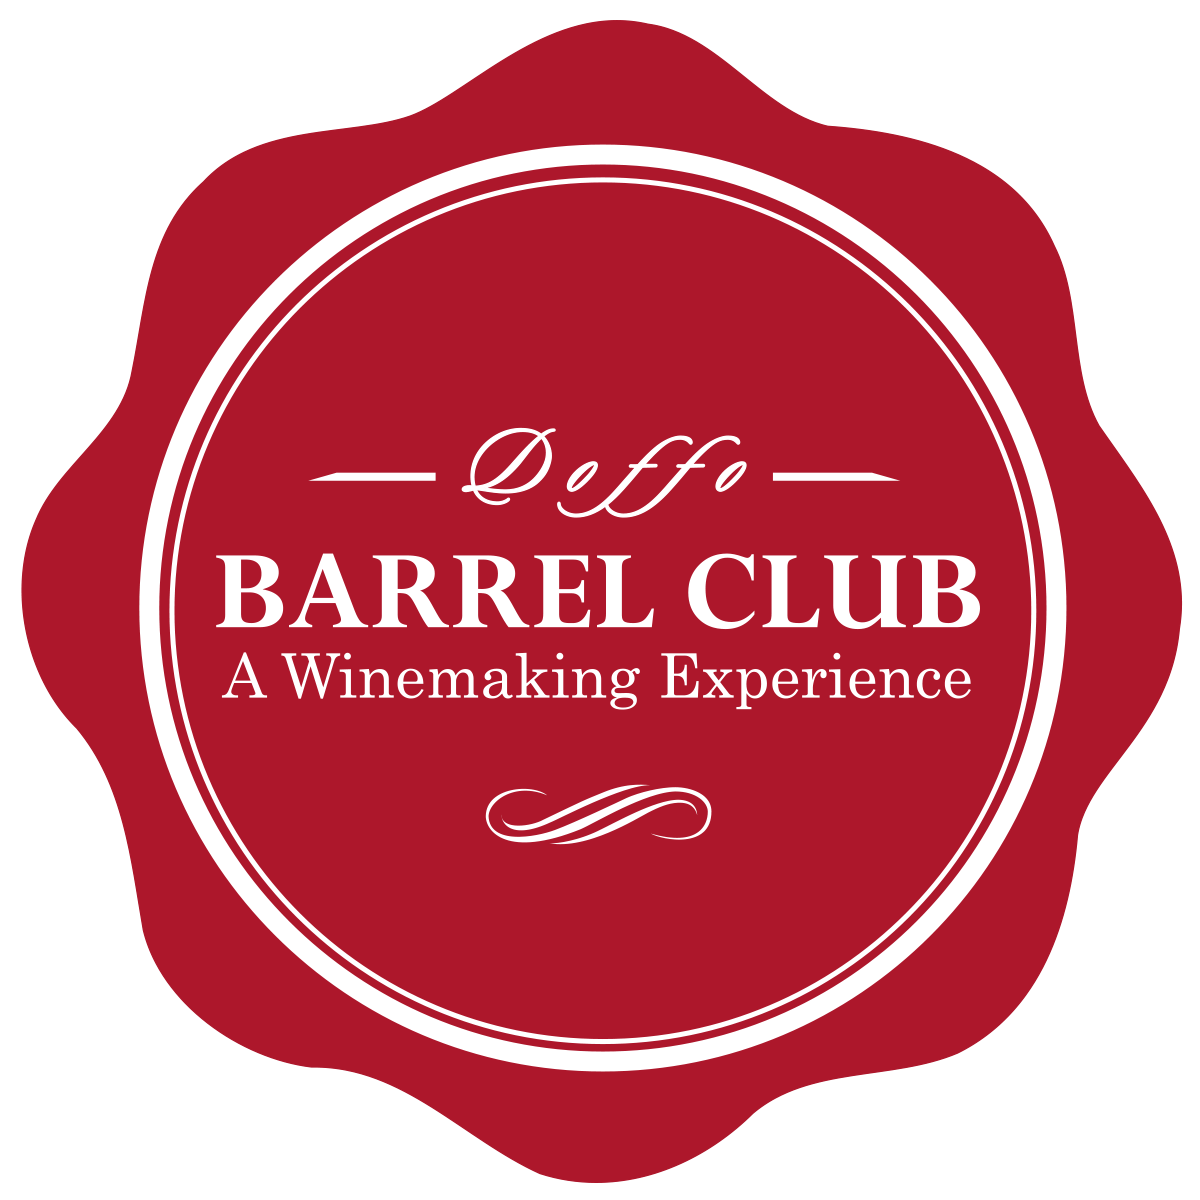 Doffo Barrel Club